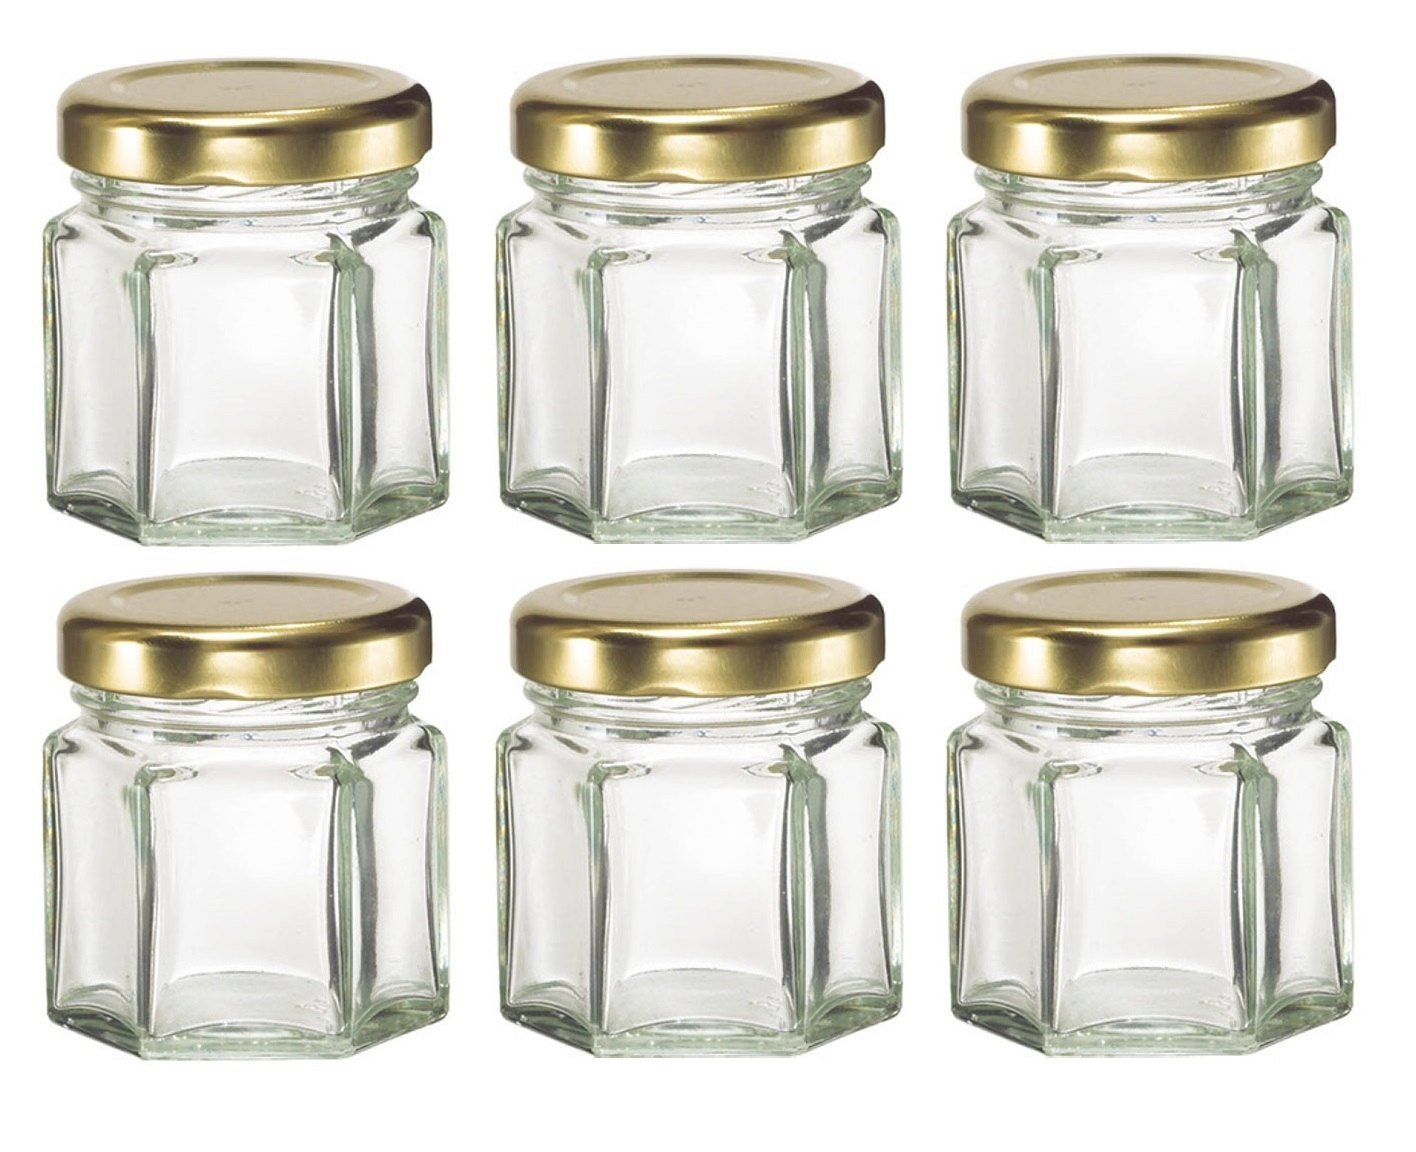 Amazon.com: Mini Hexagon Glass Jars for Jam, Honey, Wedding Favors ...